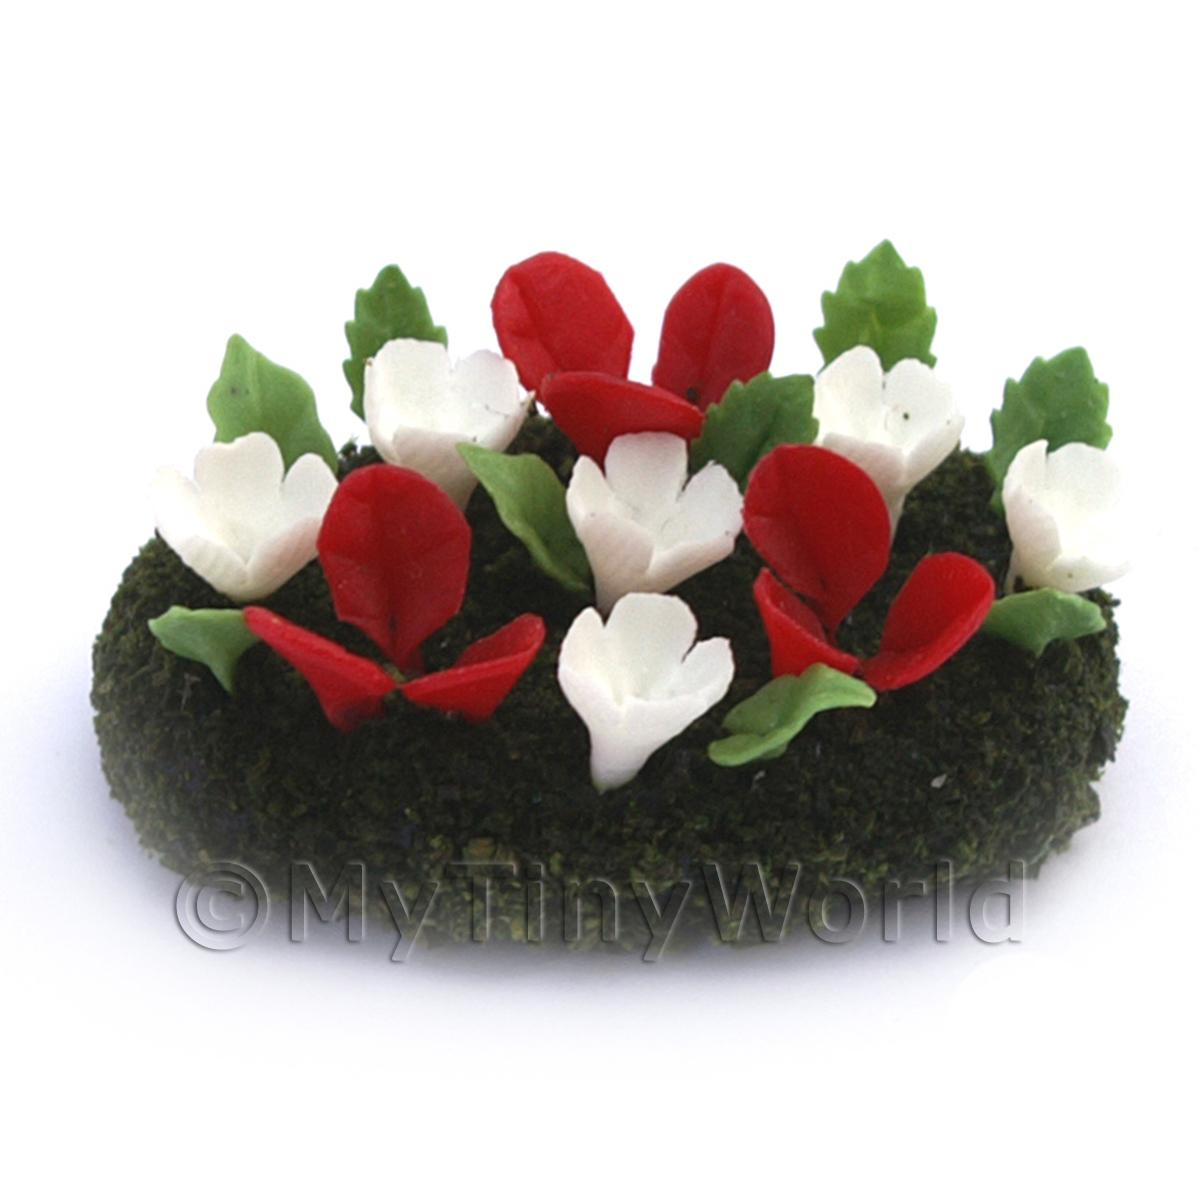 Dolls House Miniature Small DIY Flower Bed (DIY17)